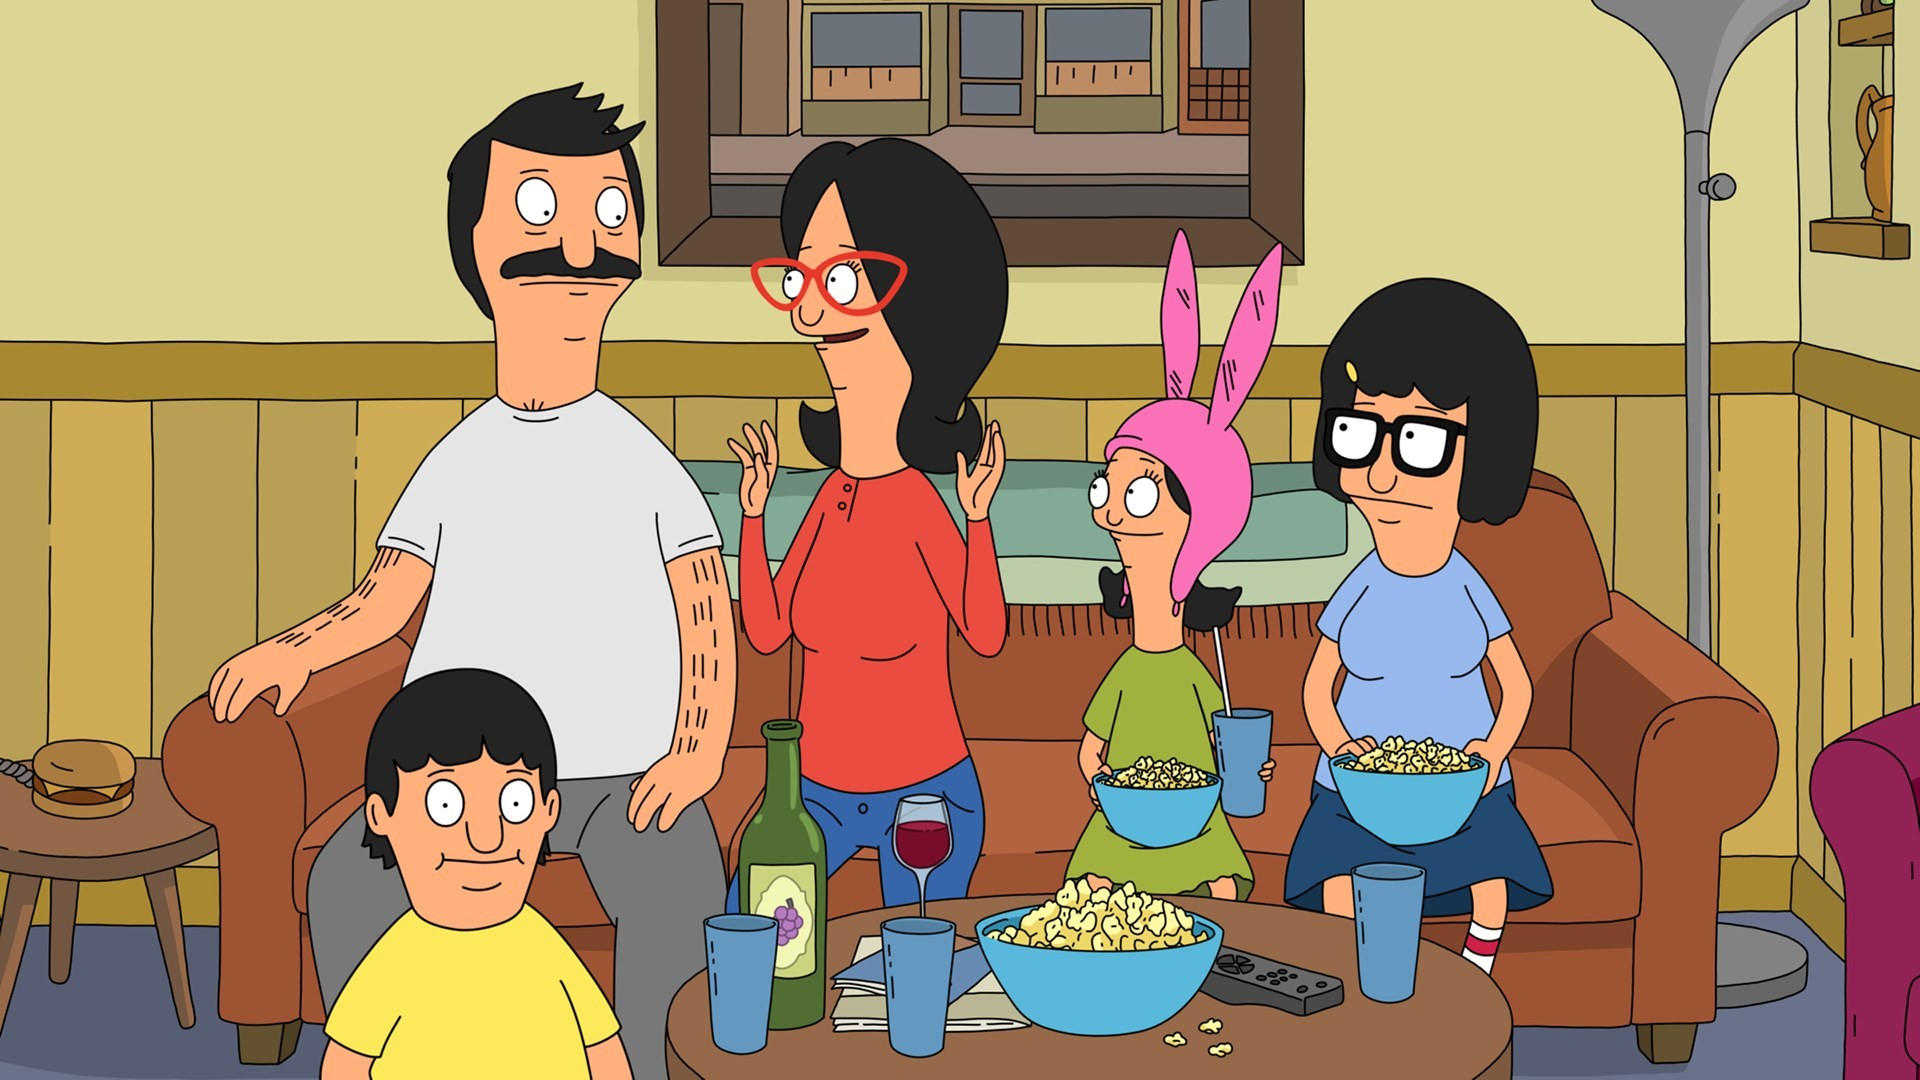 bobs burgers wallpaper pictures free, (292 kB)